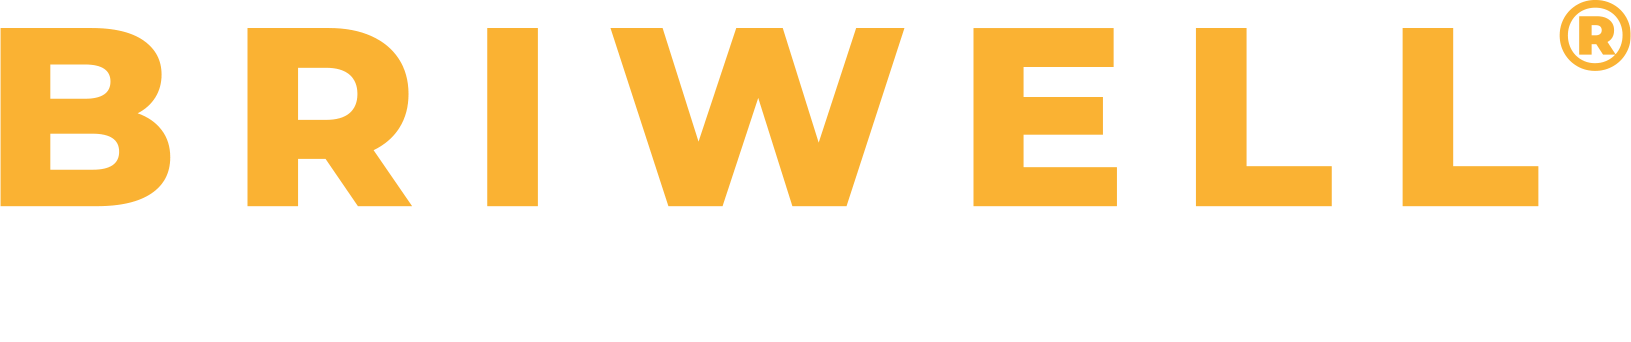 Briwell Group